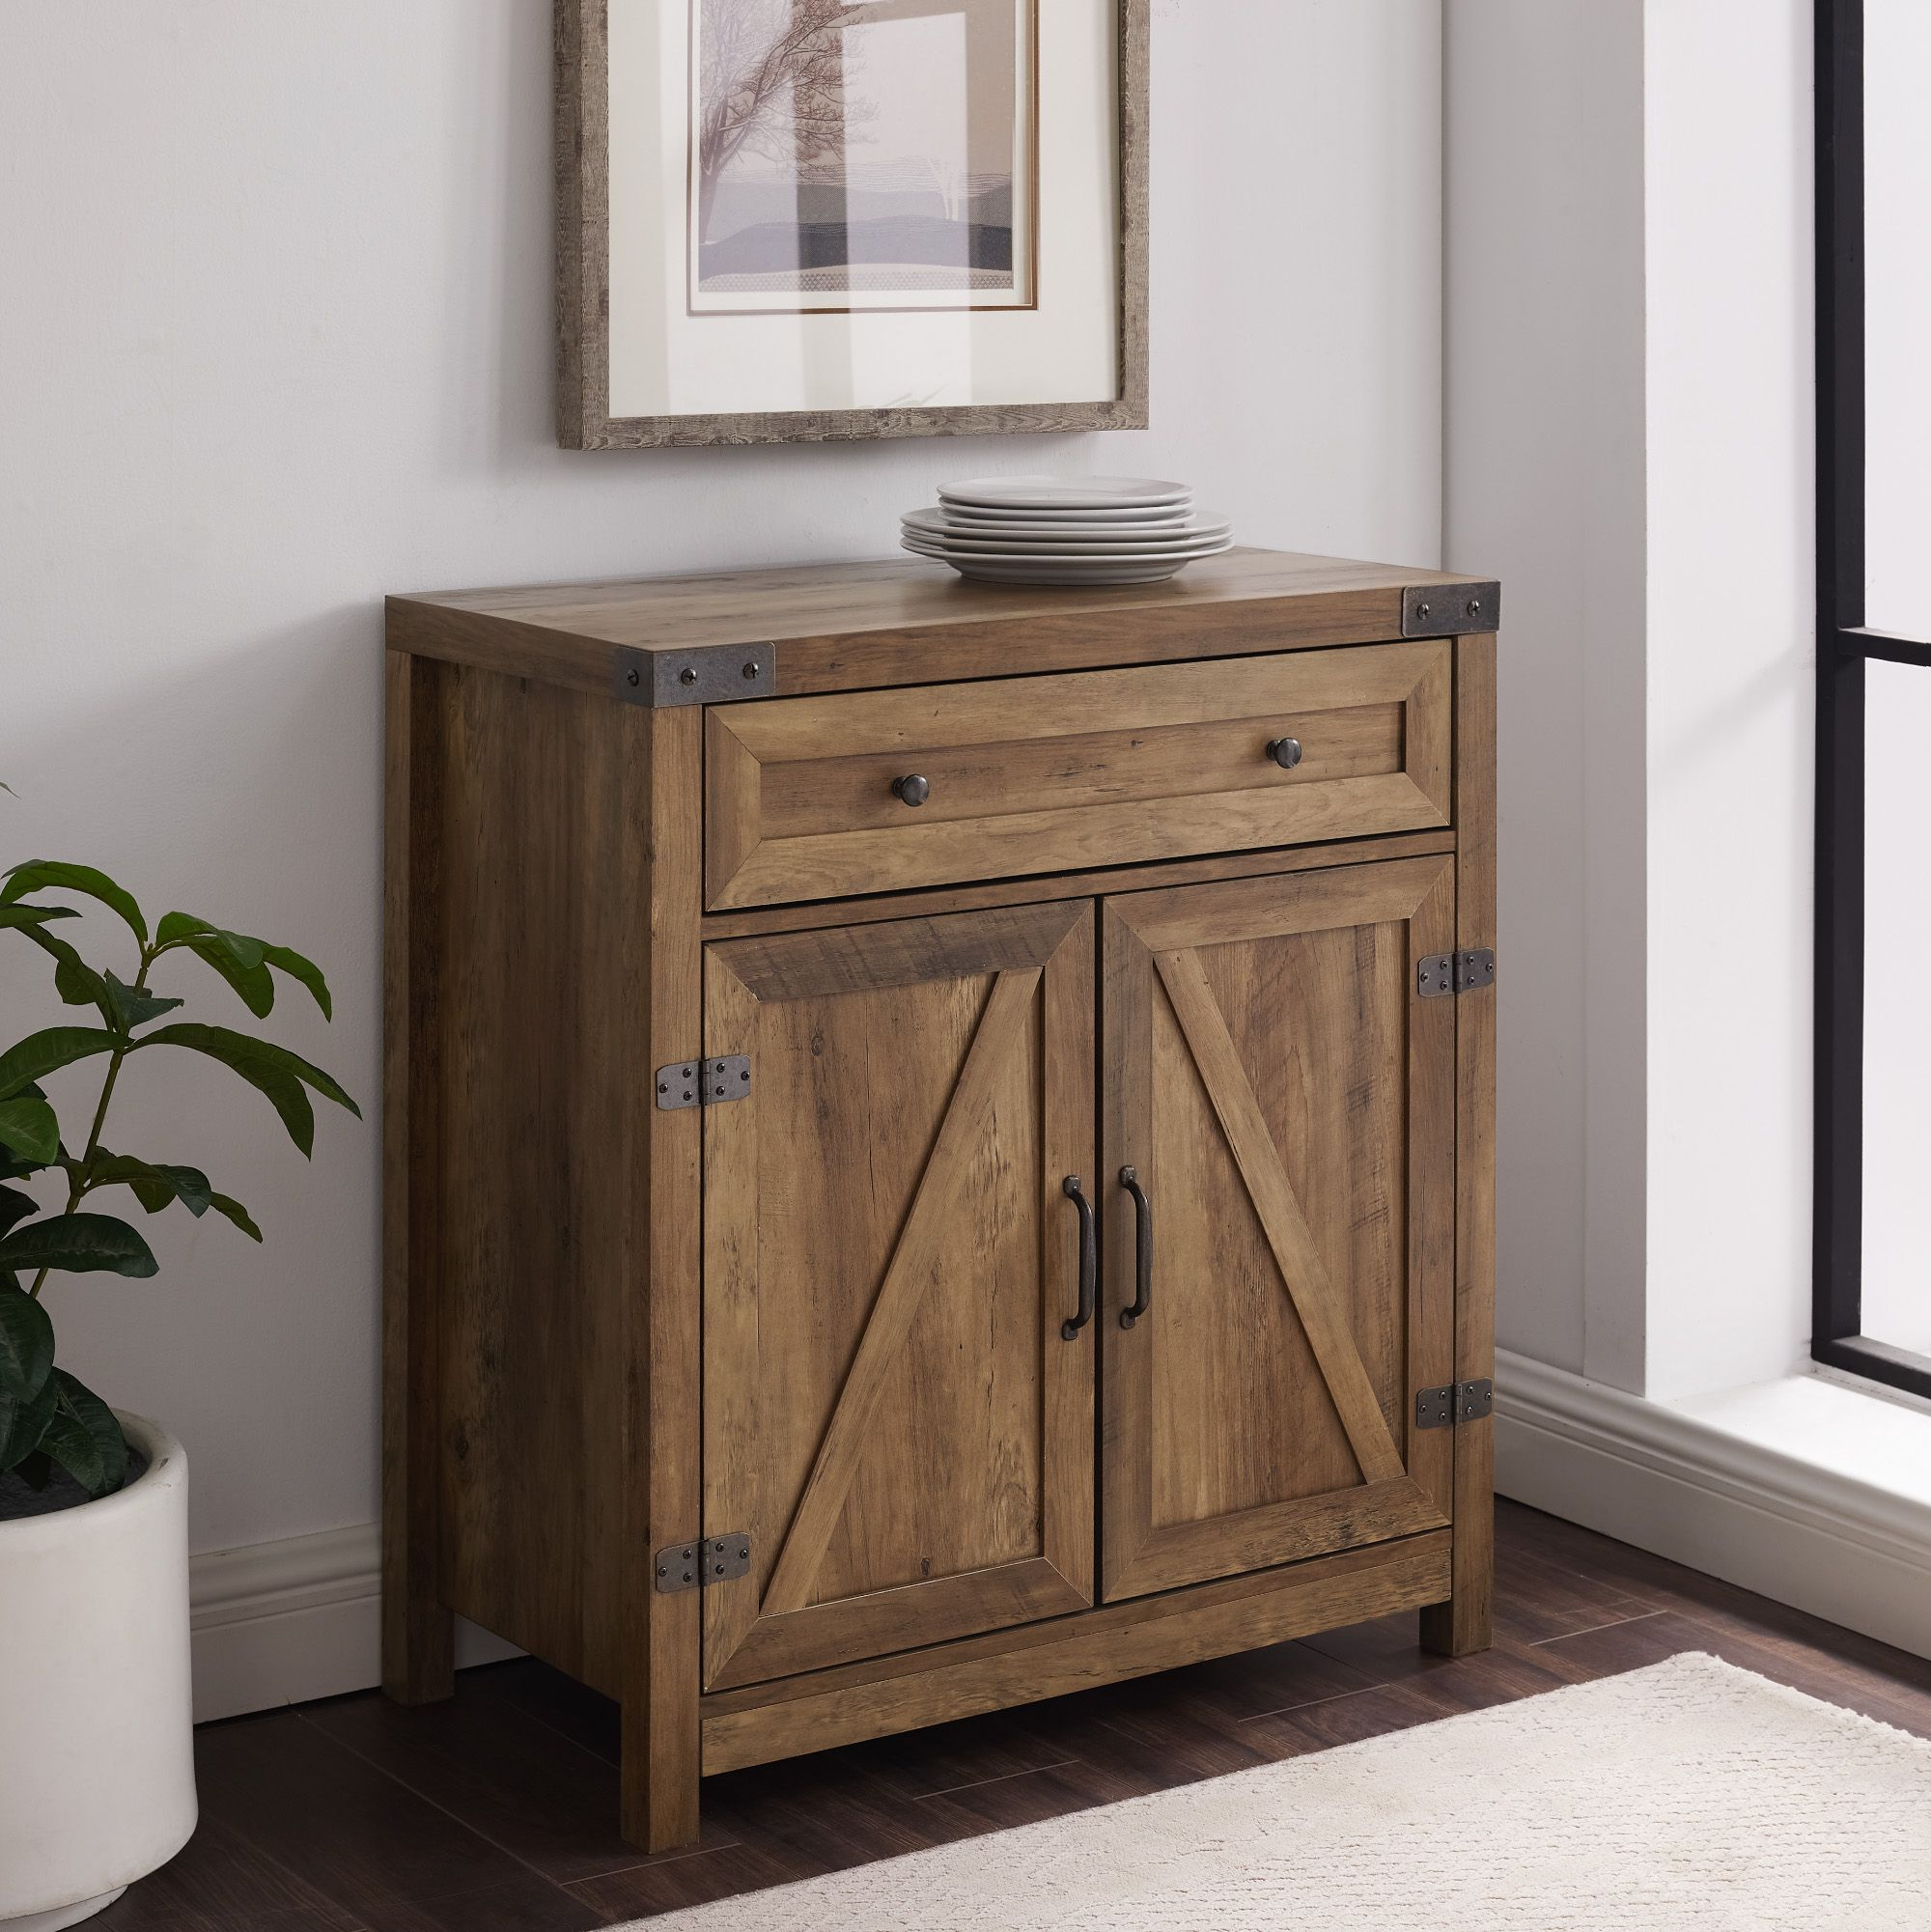 Manor Park Farmhouse Barn Door Accent Cabinet Reclaimed For Woven Paths Farmhouse Sliding Barn Door Tv Stands With Multiple Finishes (View 7 of 14)